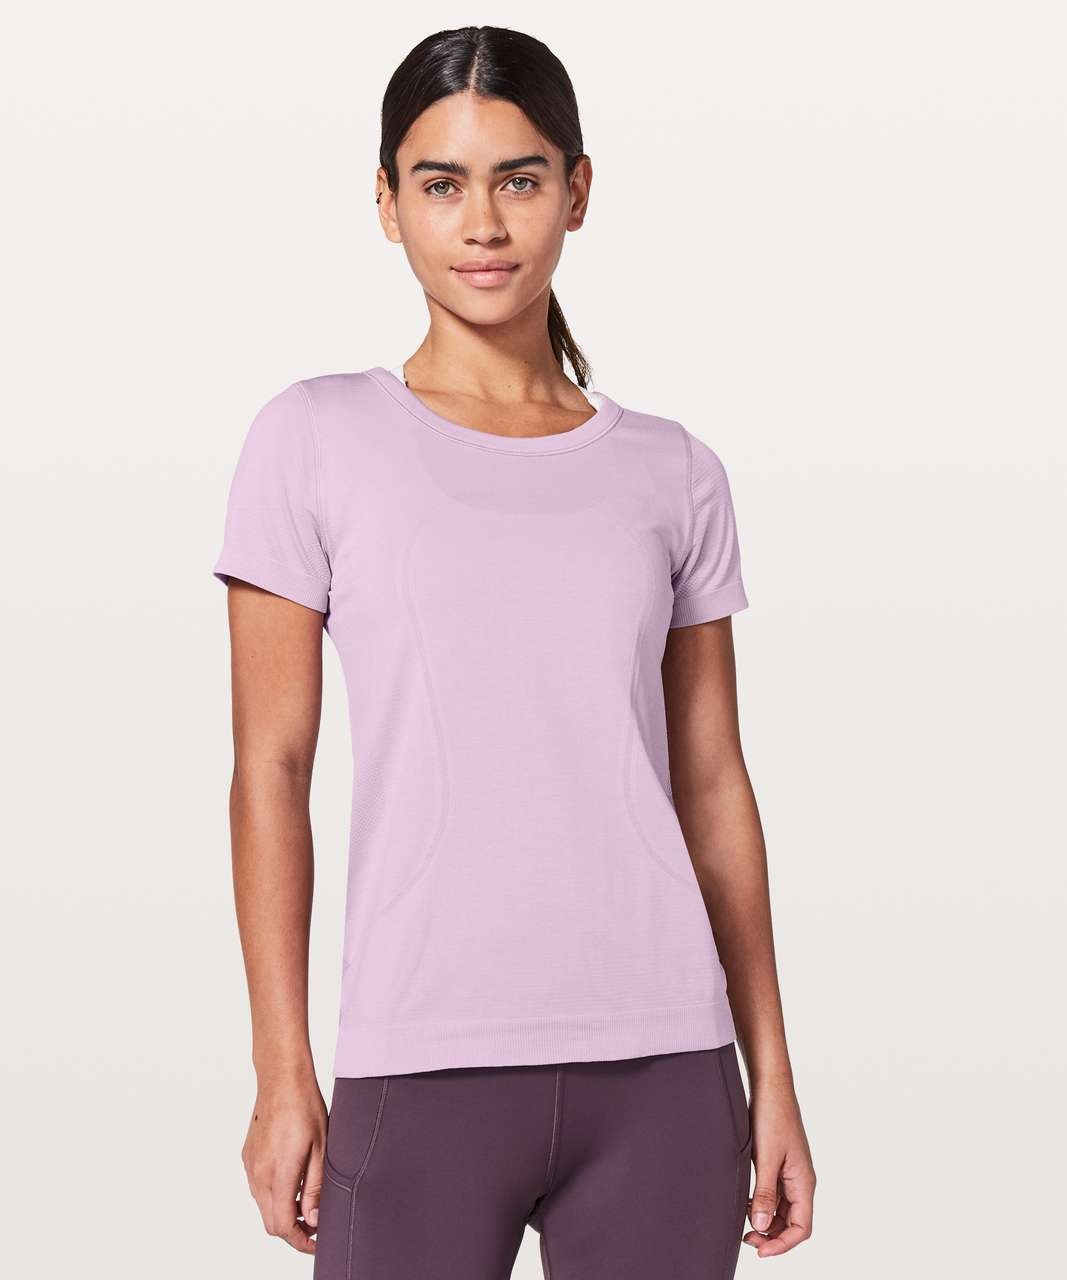 Lululemon Swiftly Tech Short Sleeve (Breeze) *Relaxed Fit - Violetta / Violetta